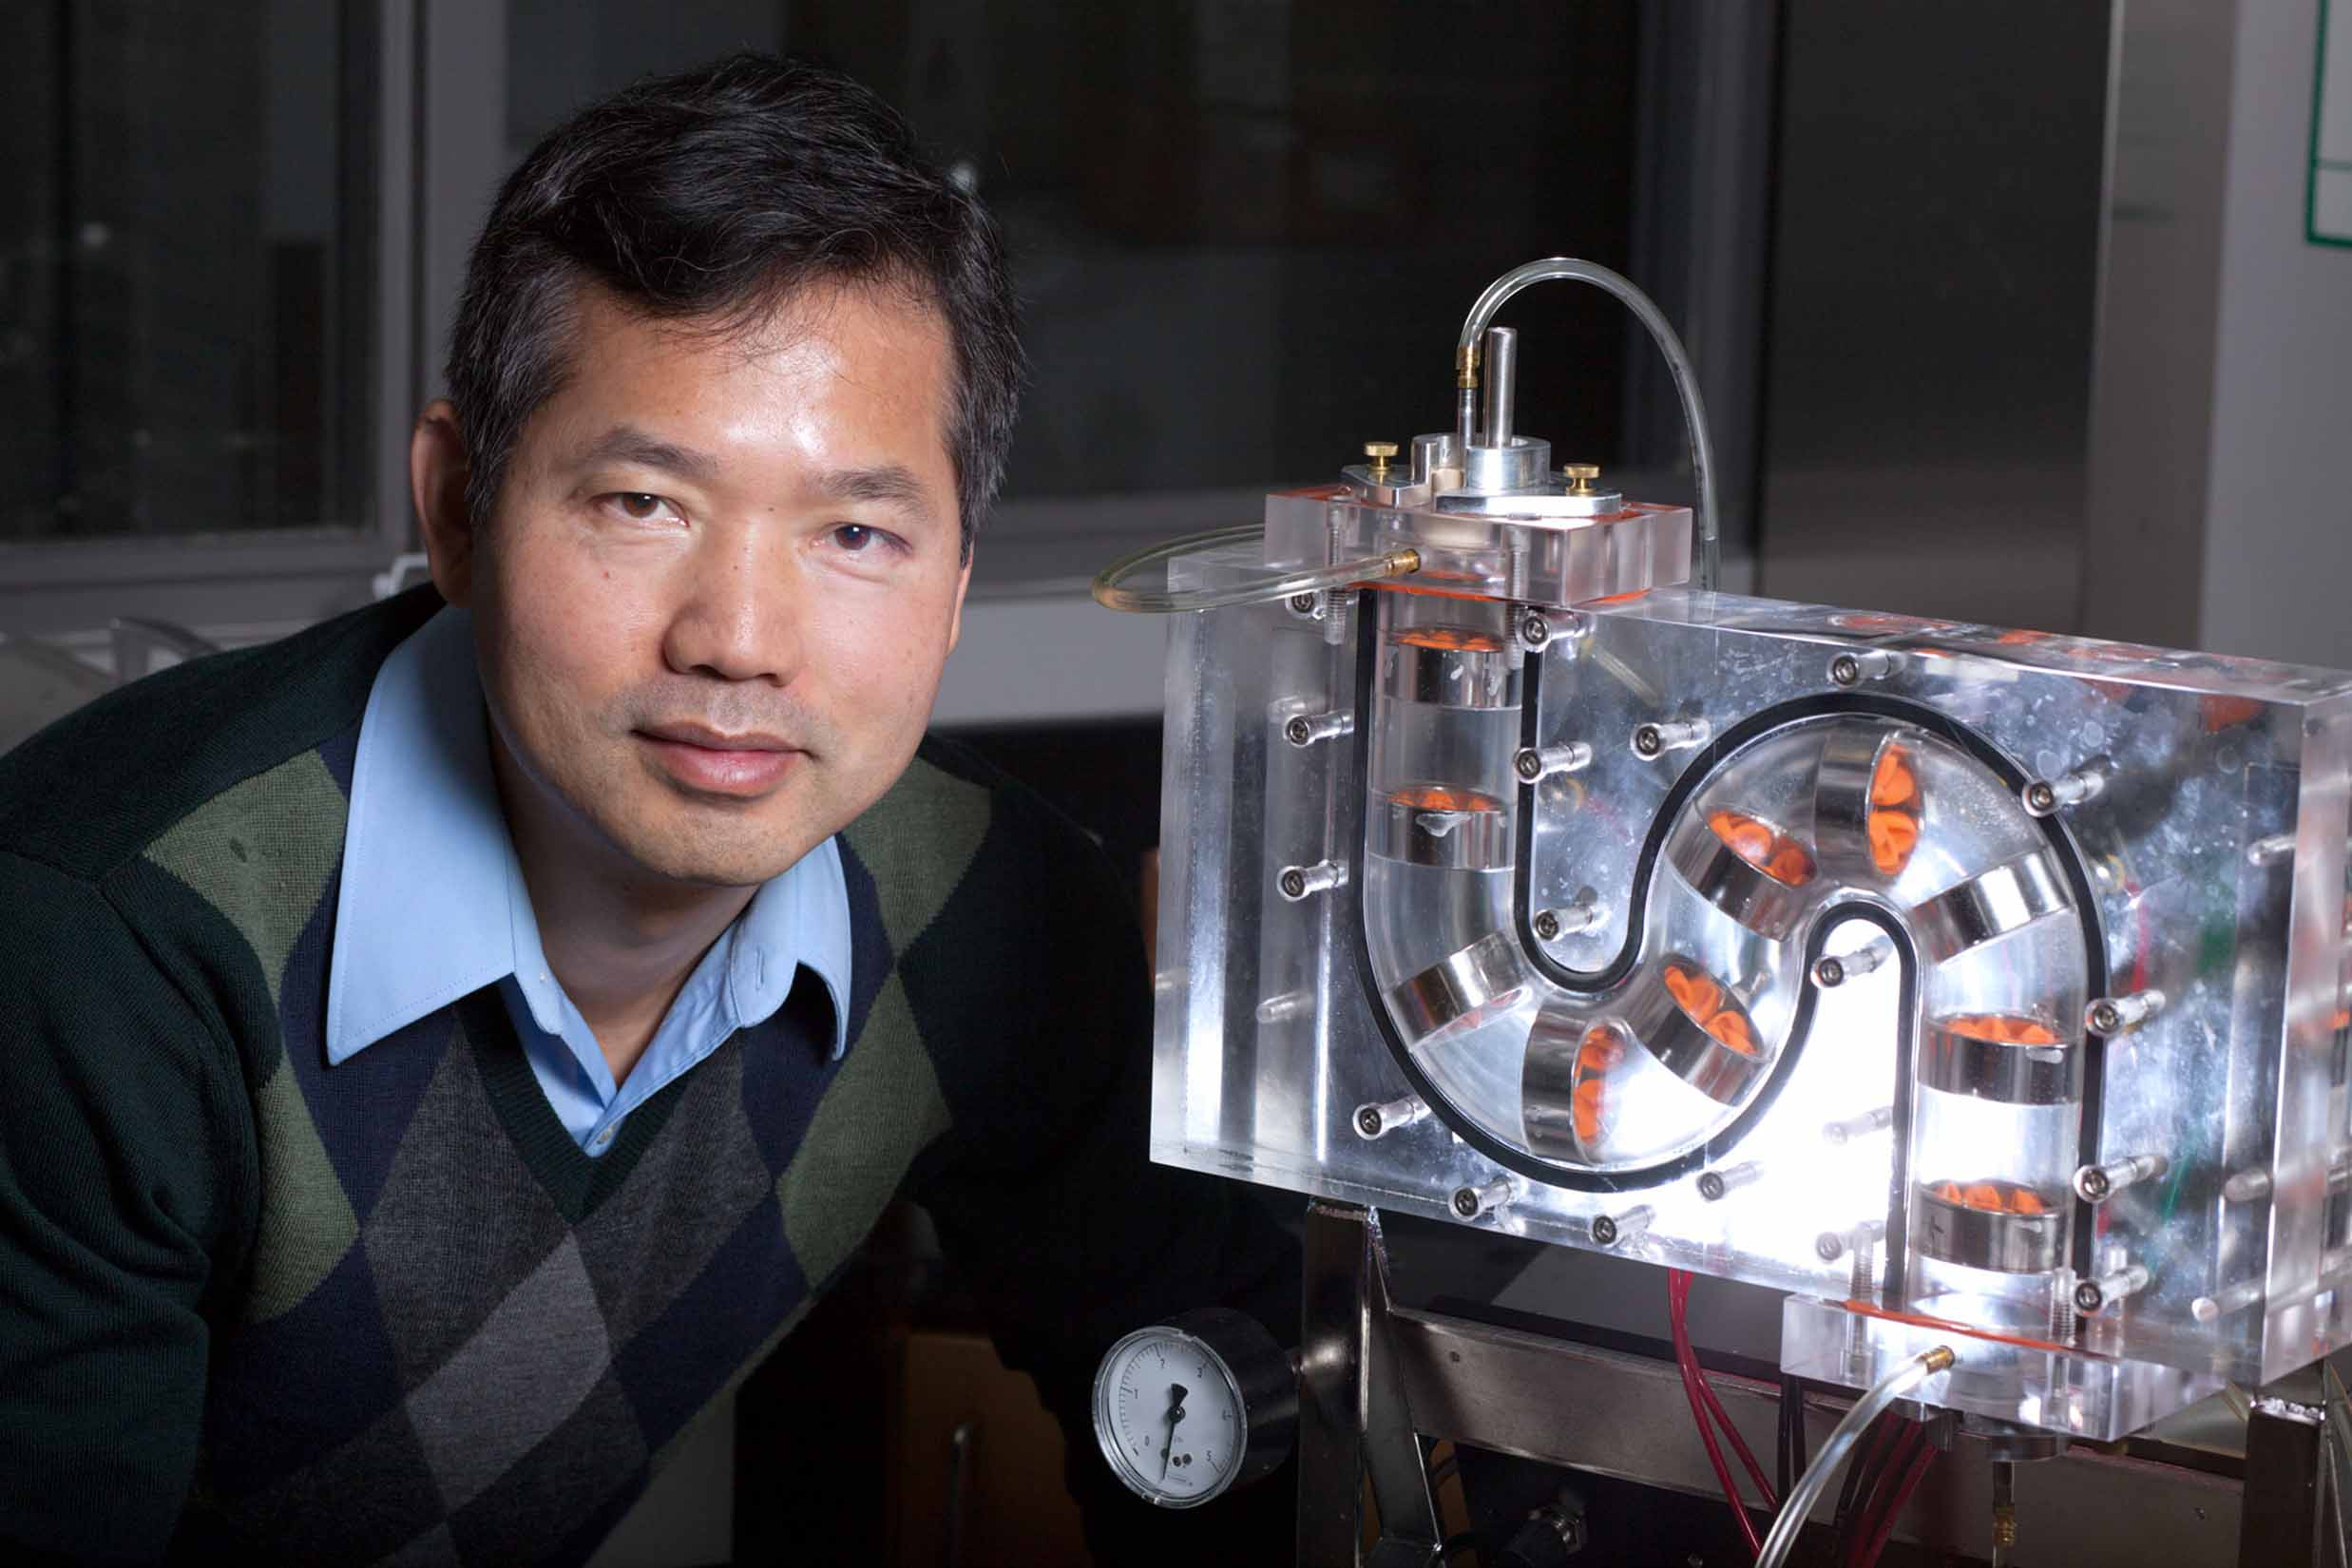 Fanbin Kong, a researcher in the University of Georgia College of Agricultural and Environmental Sciences Department of Food Science Technology, has spent is career studying how our bodies interact with the food we eat.